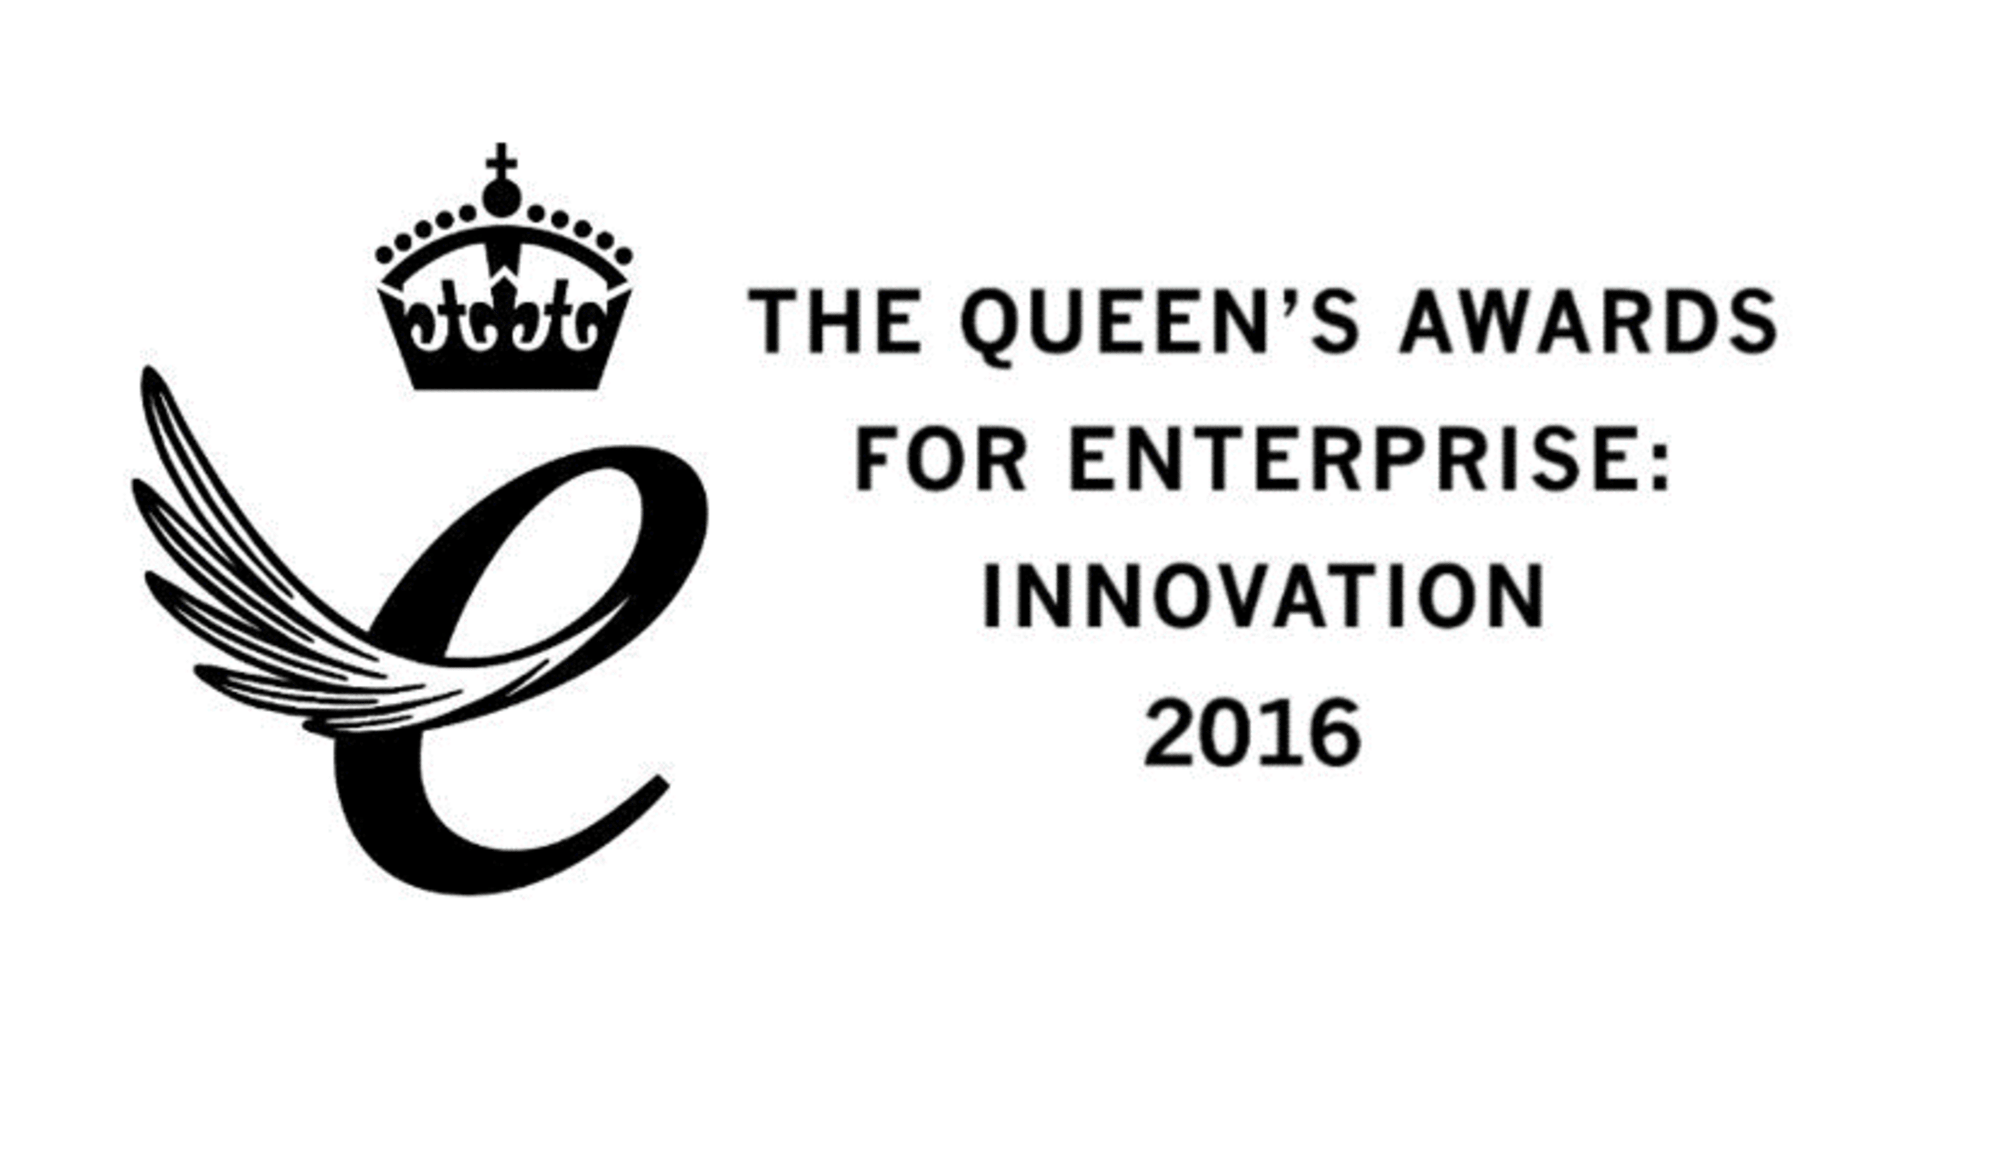 Background Image for Location Planning and Data Analytics firm Geolytix win Queen's Award for Enterprise